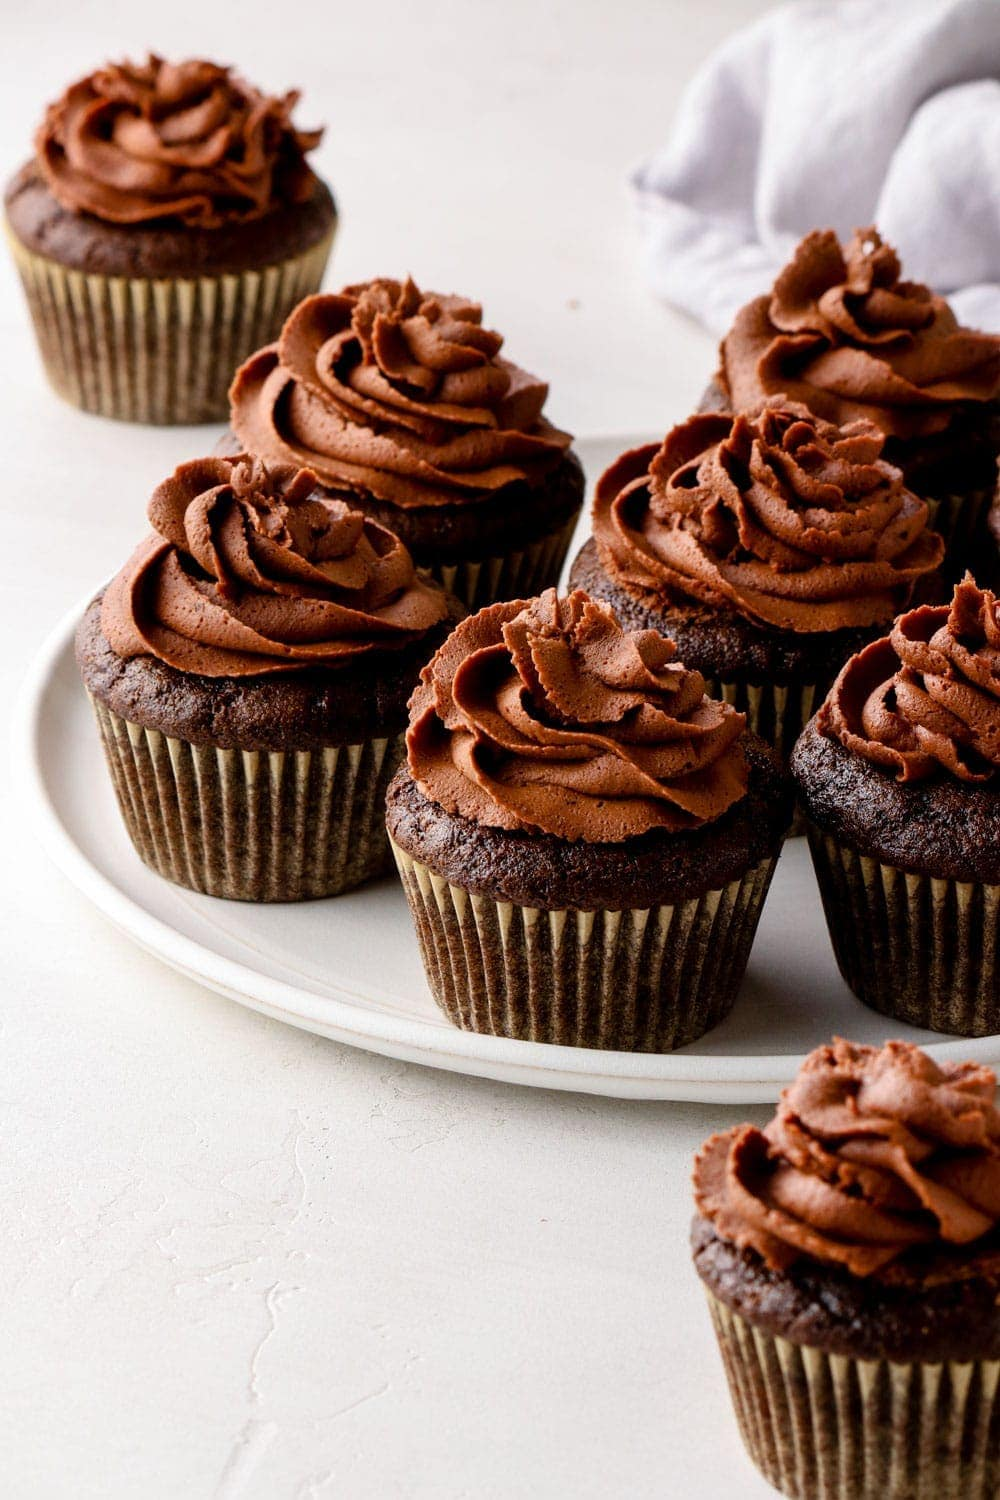 Chocolate cupcakes on a white plate.